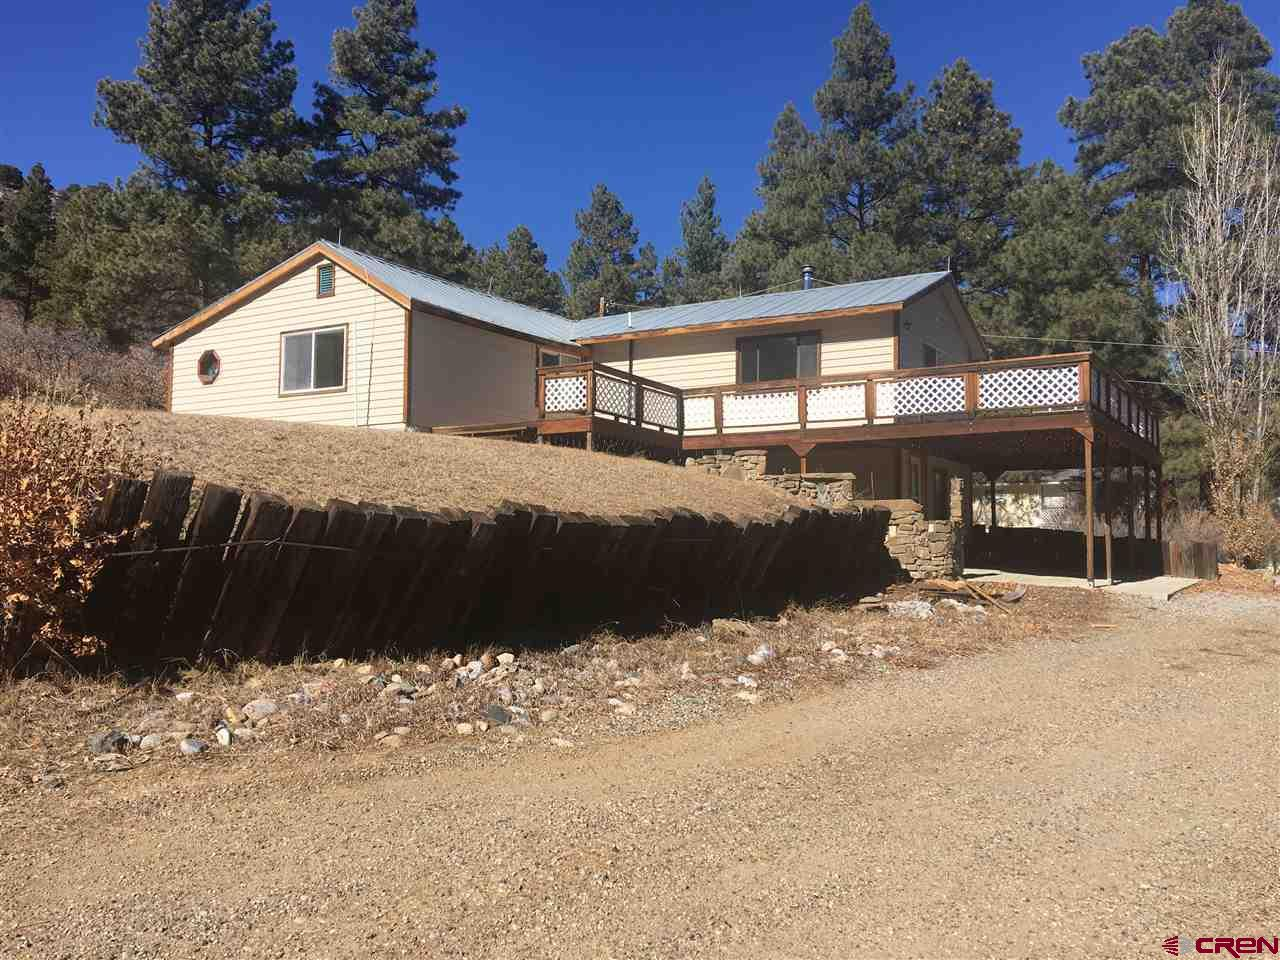 927-Cr-502 Bayfield Real Estate. Residential - For Sale